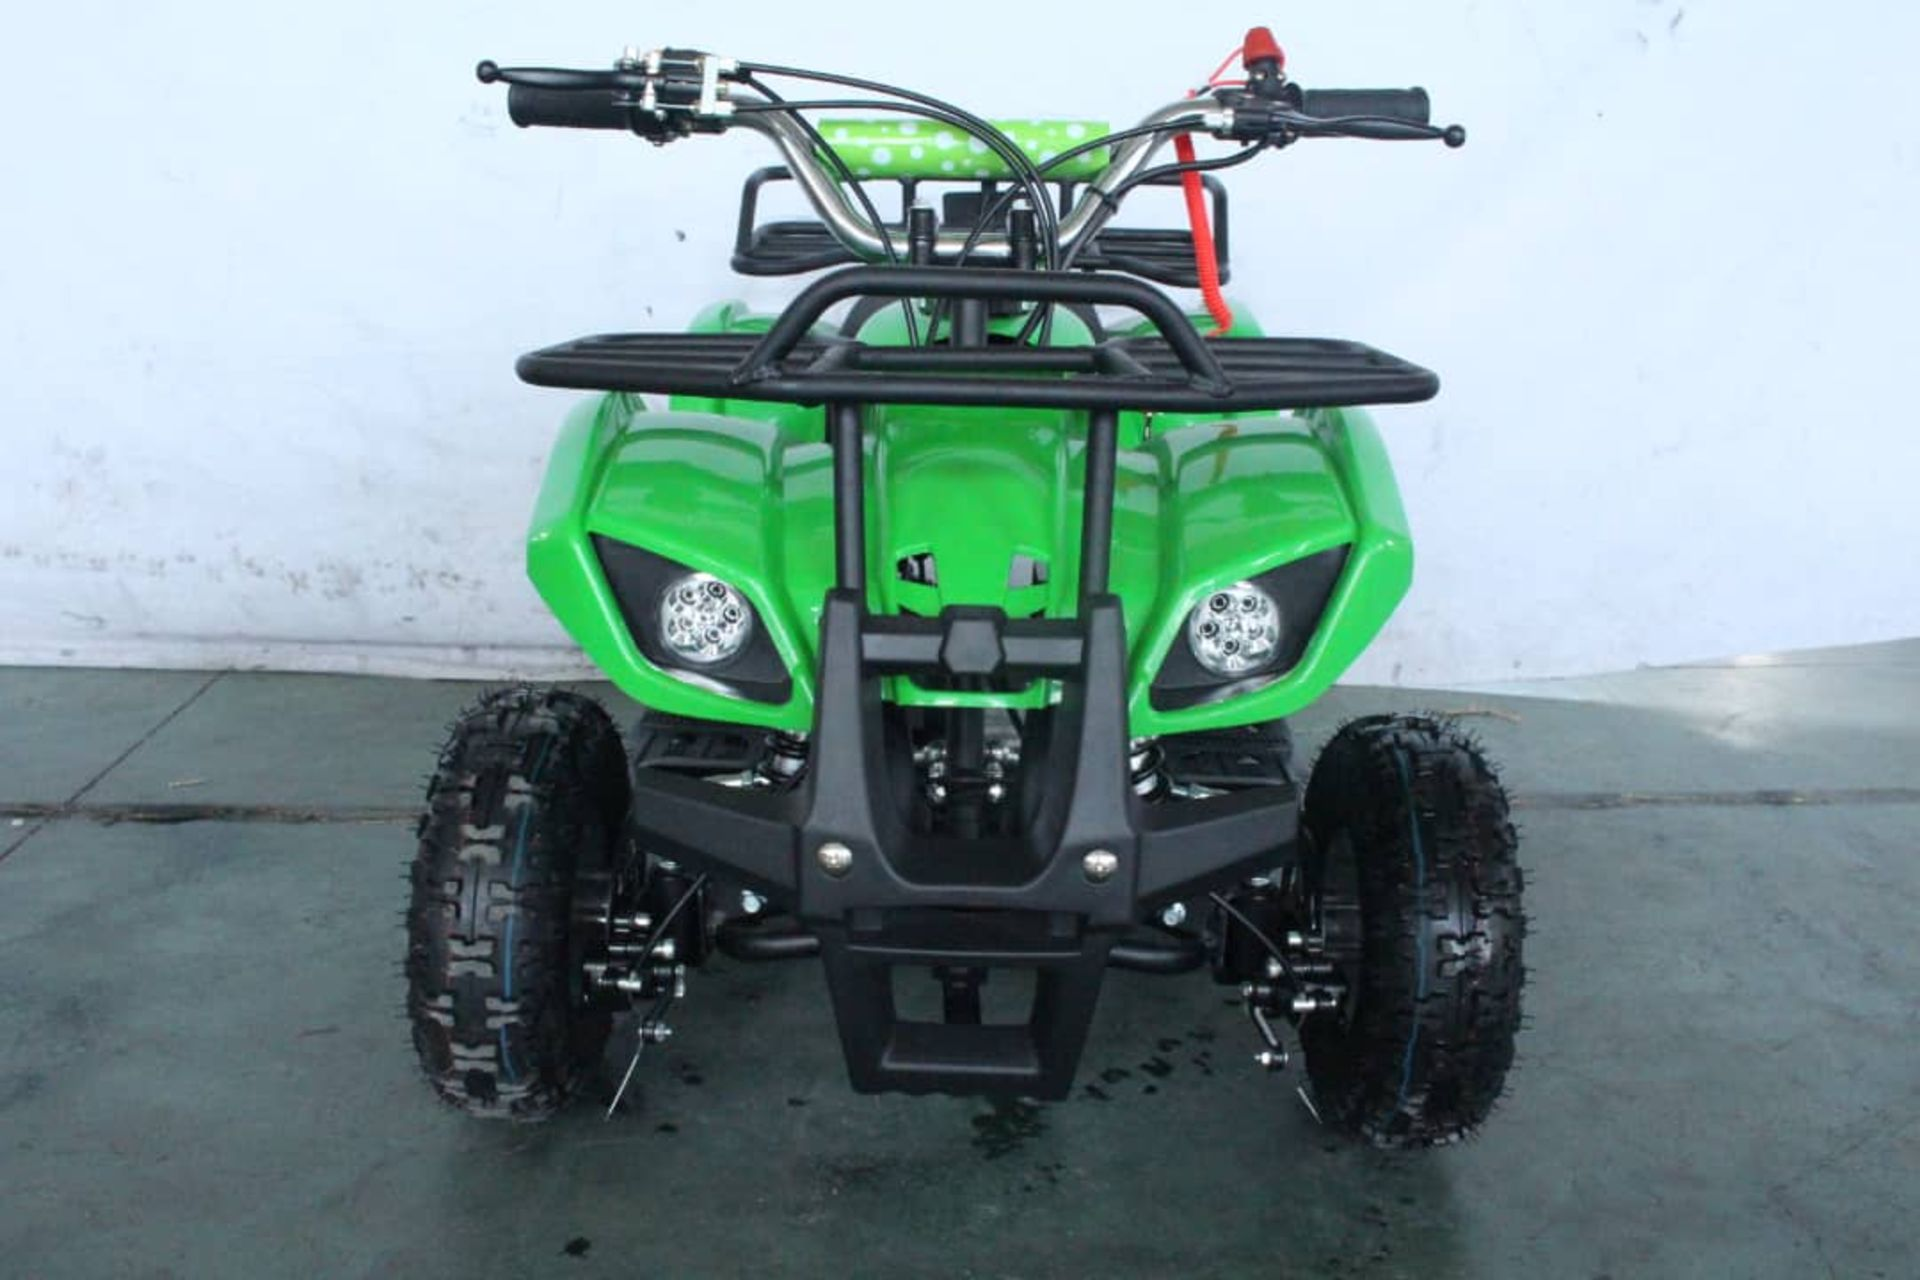 + VAT Brand New 50cc Mini Quad Bike FRM - Colours May Vary - Picture May Vary From Actual Item - Image 8 of 9